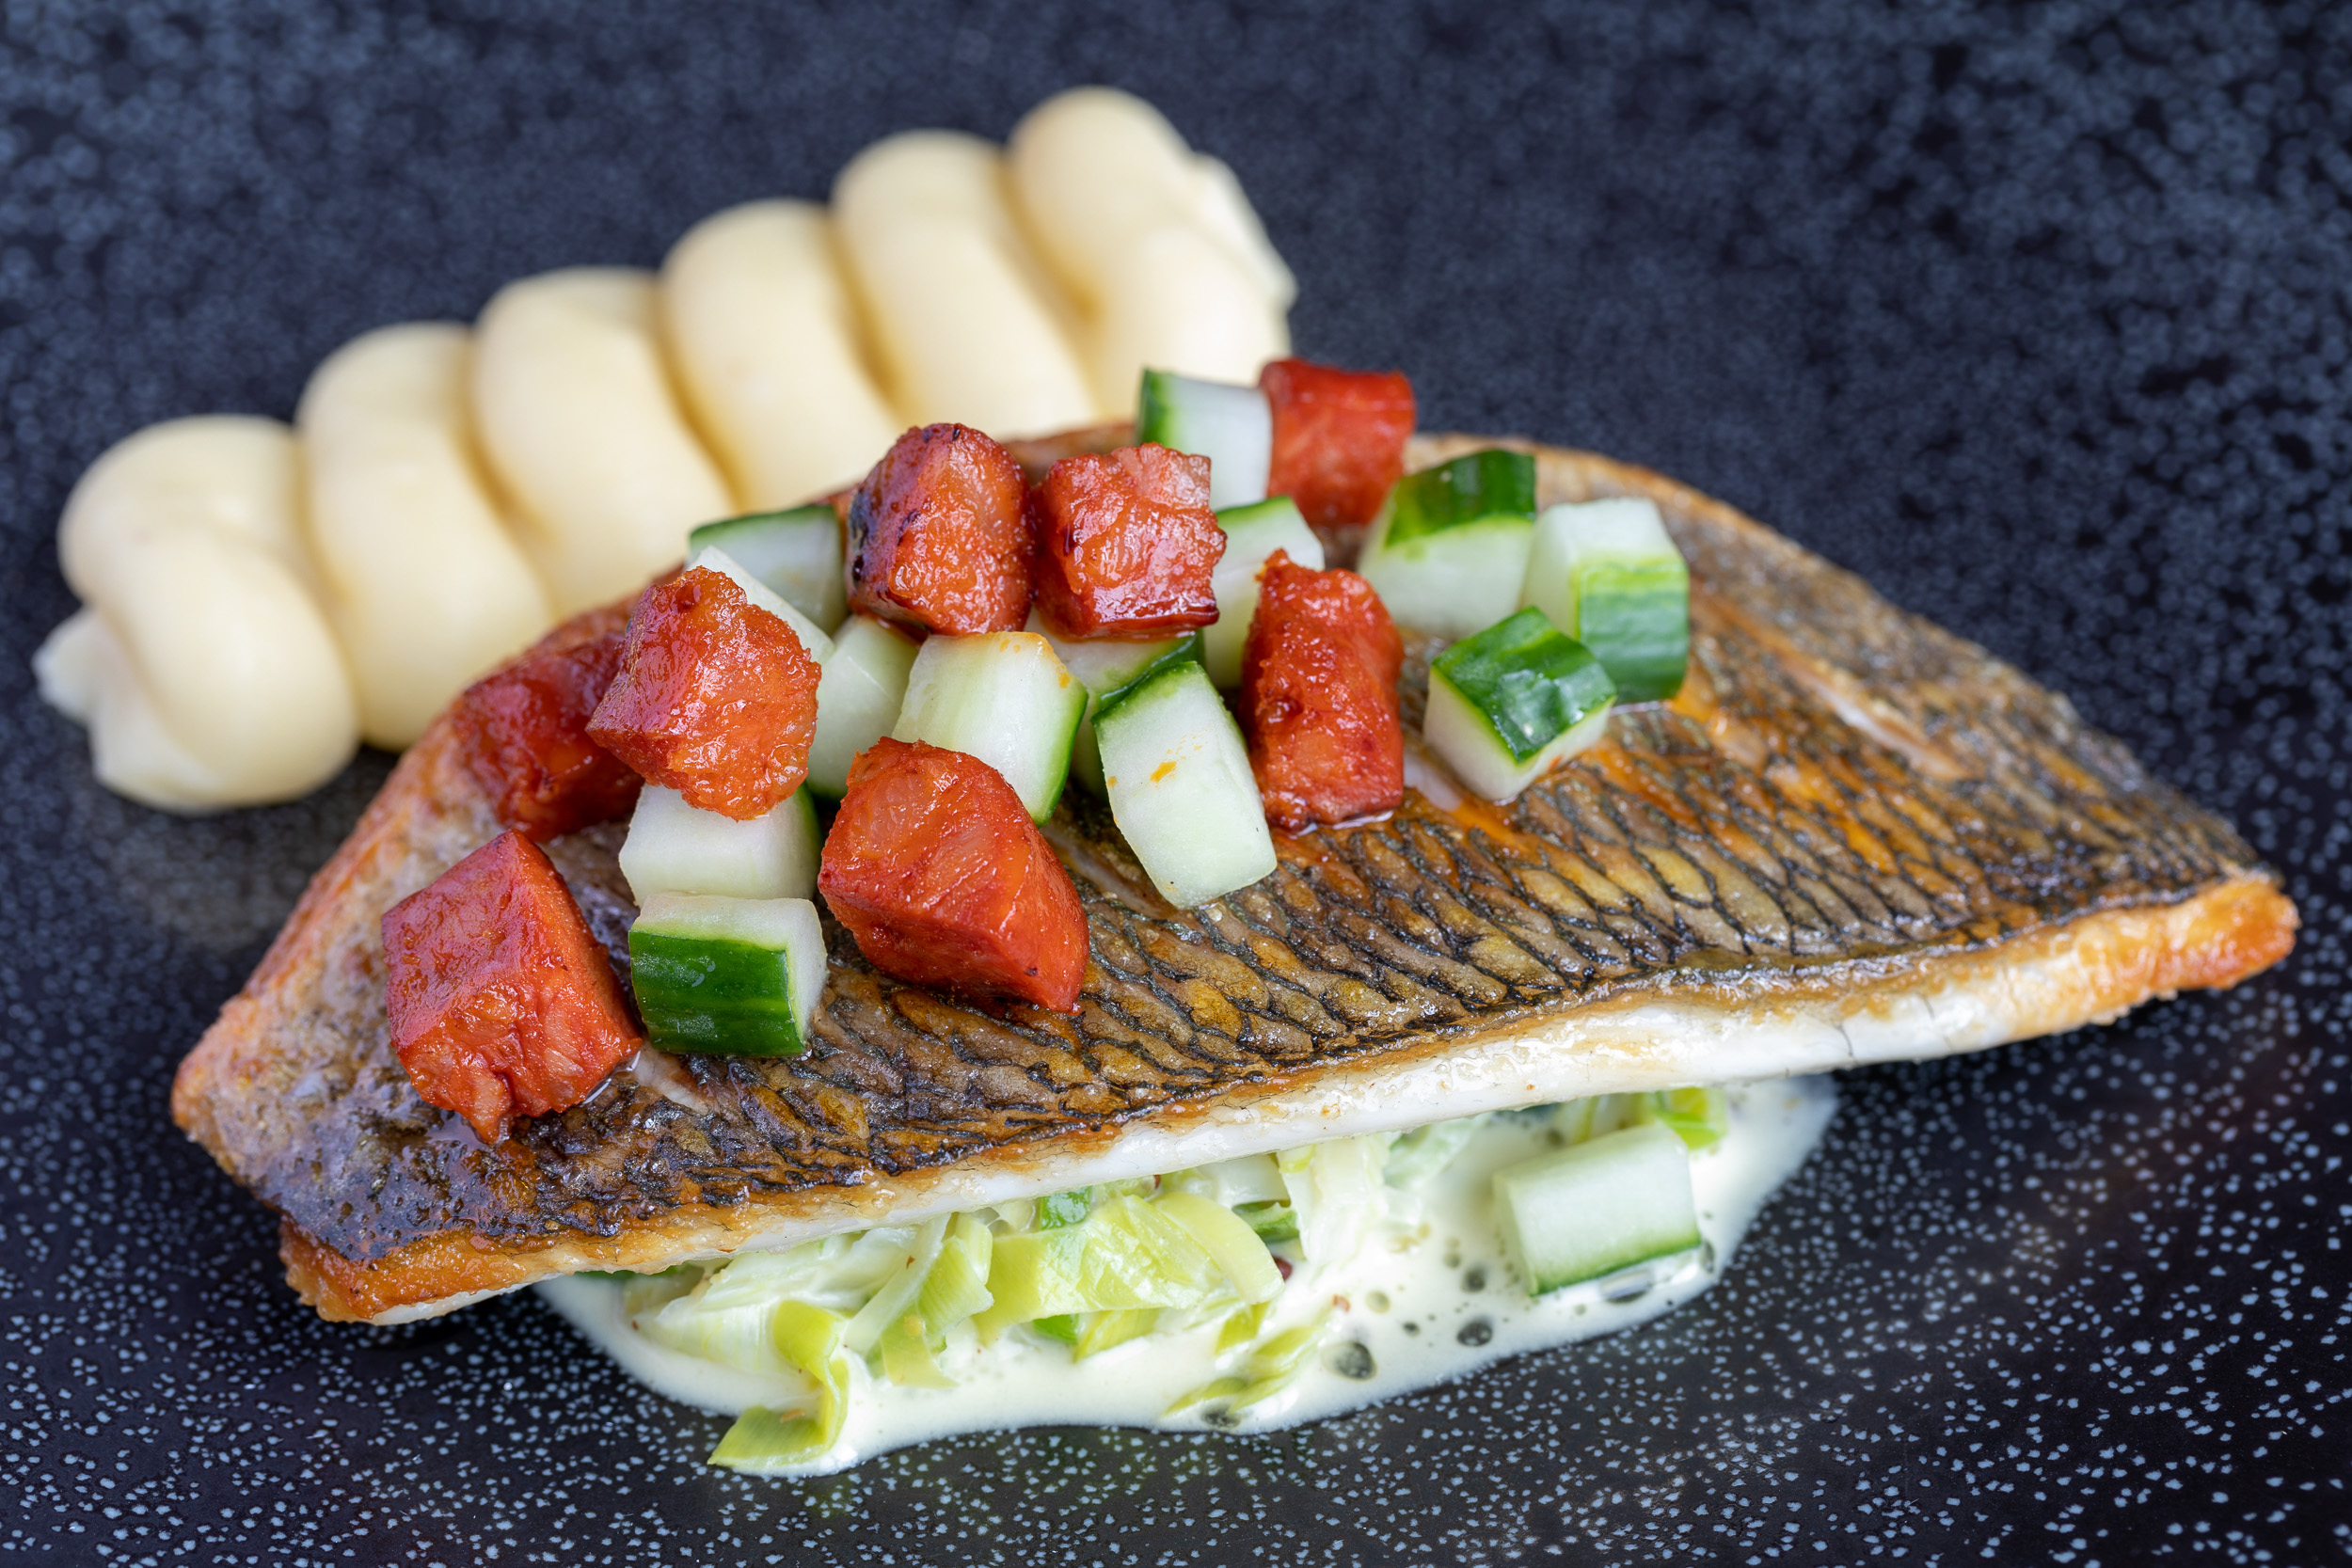 Fish Food Photography at Restaurant in Wiltshire